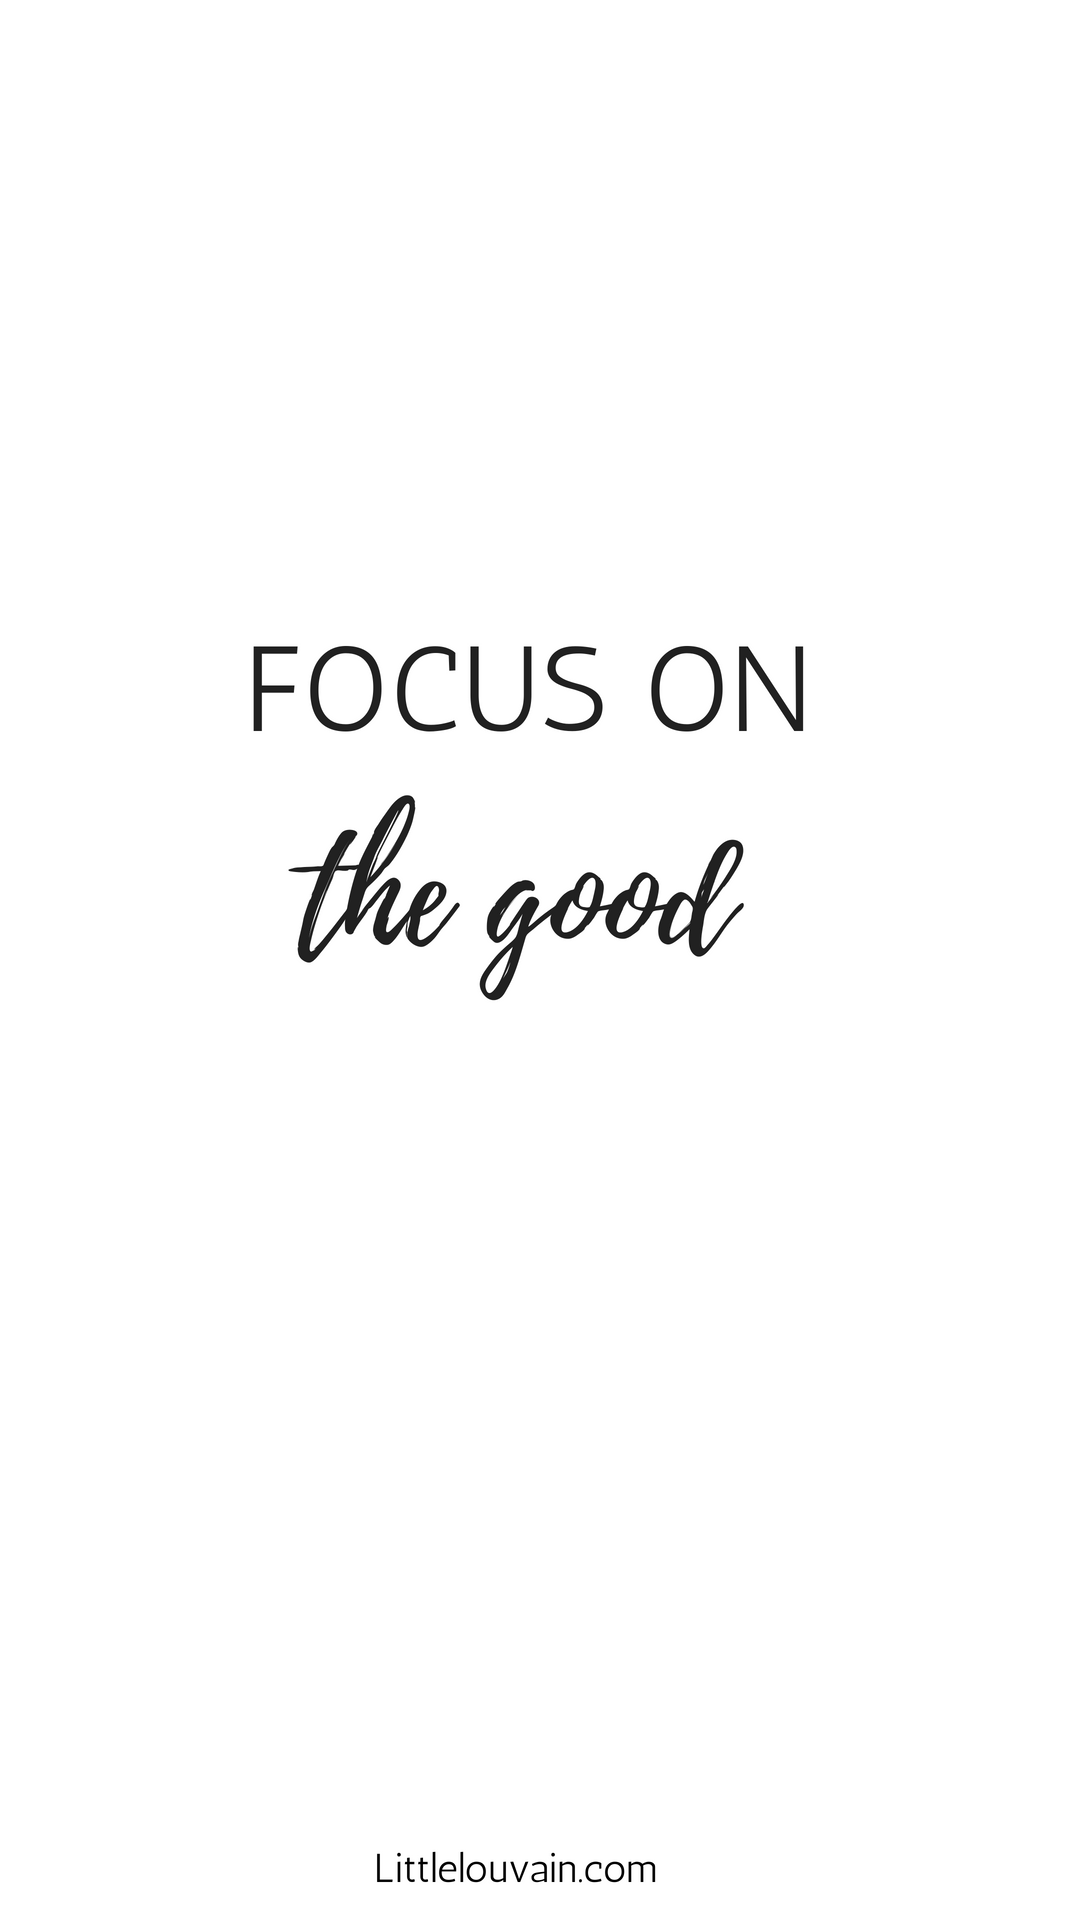 Positive Sprüche Kurz Focus On The Good Life S Too Short To Focus On All Things